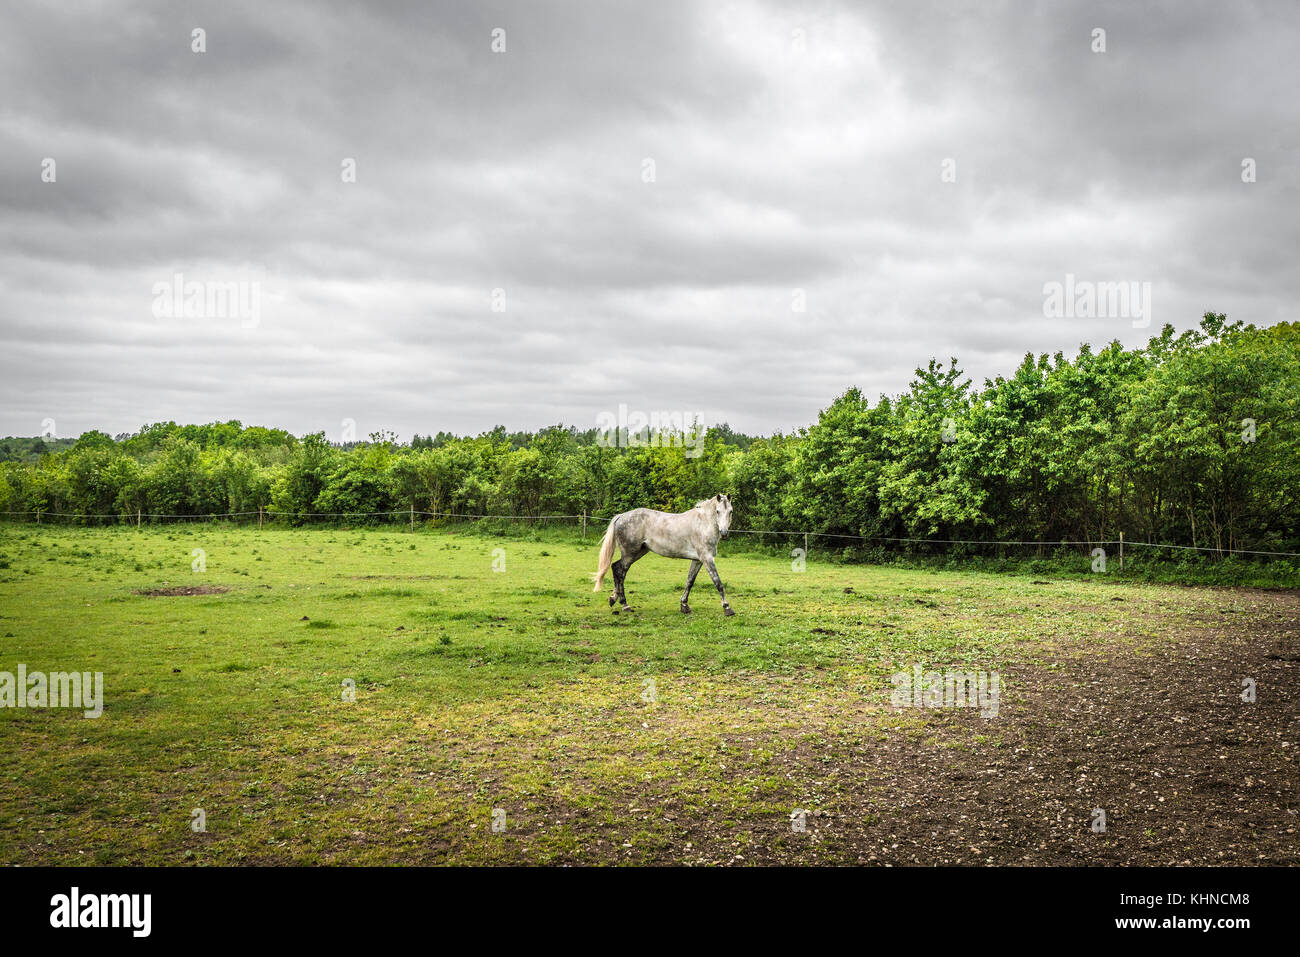 White horse walking on a field with a fence in a rural environment with green trees and cloudy weather - Stock Image